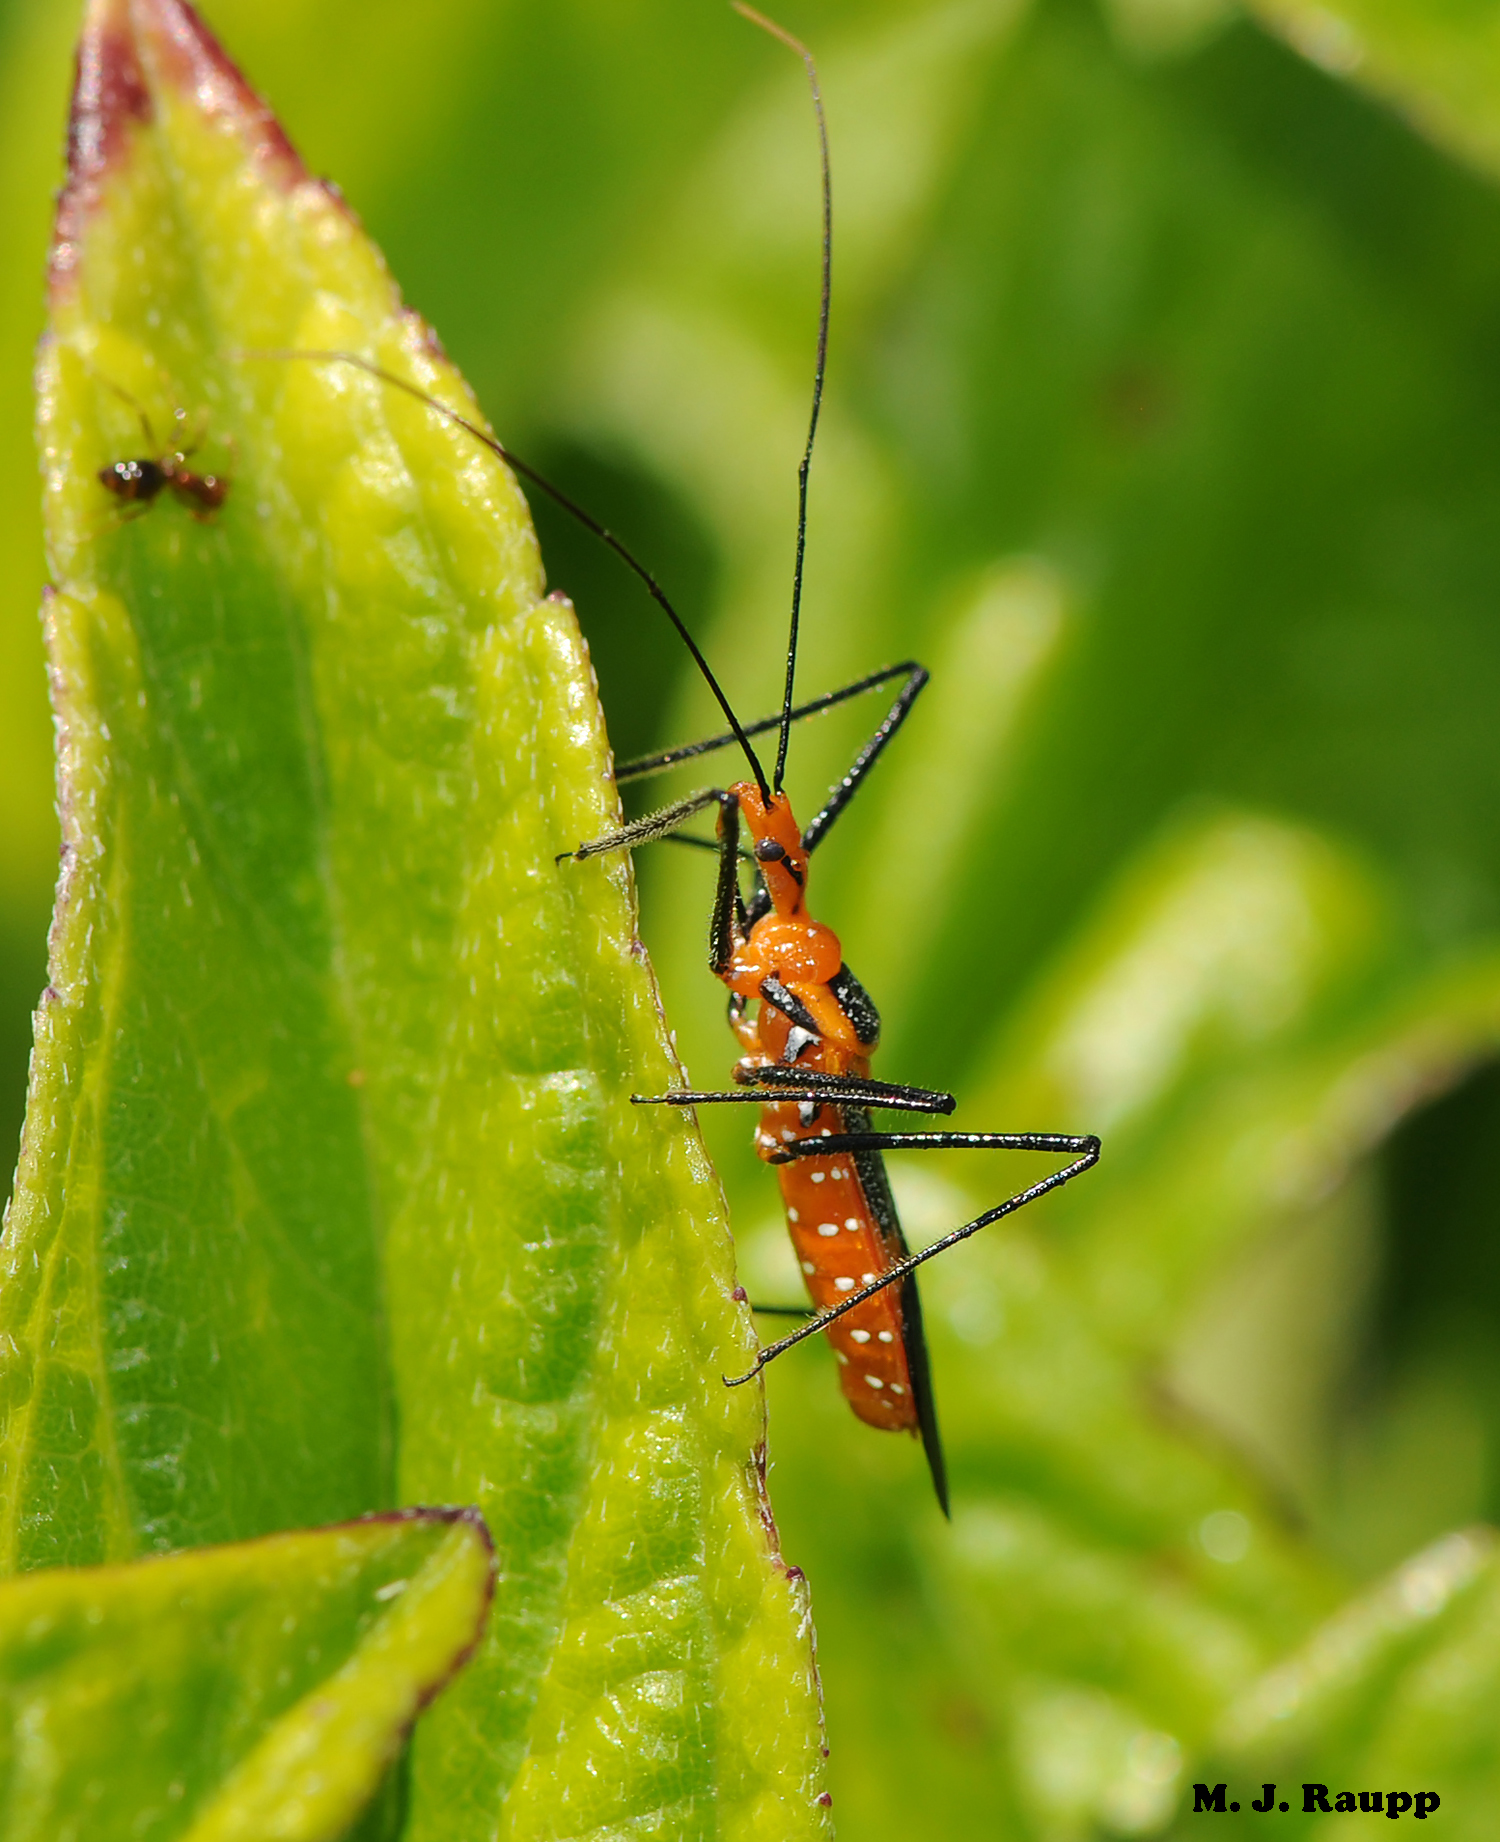 Sticky forelegs help the milkweed assassin bug snare its prey.